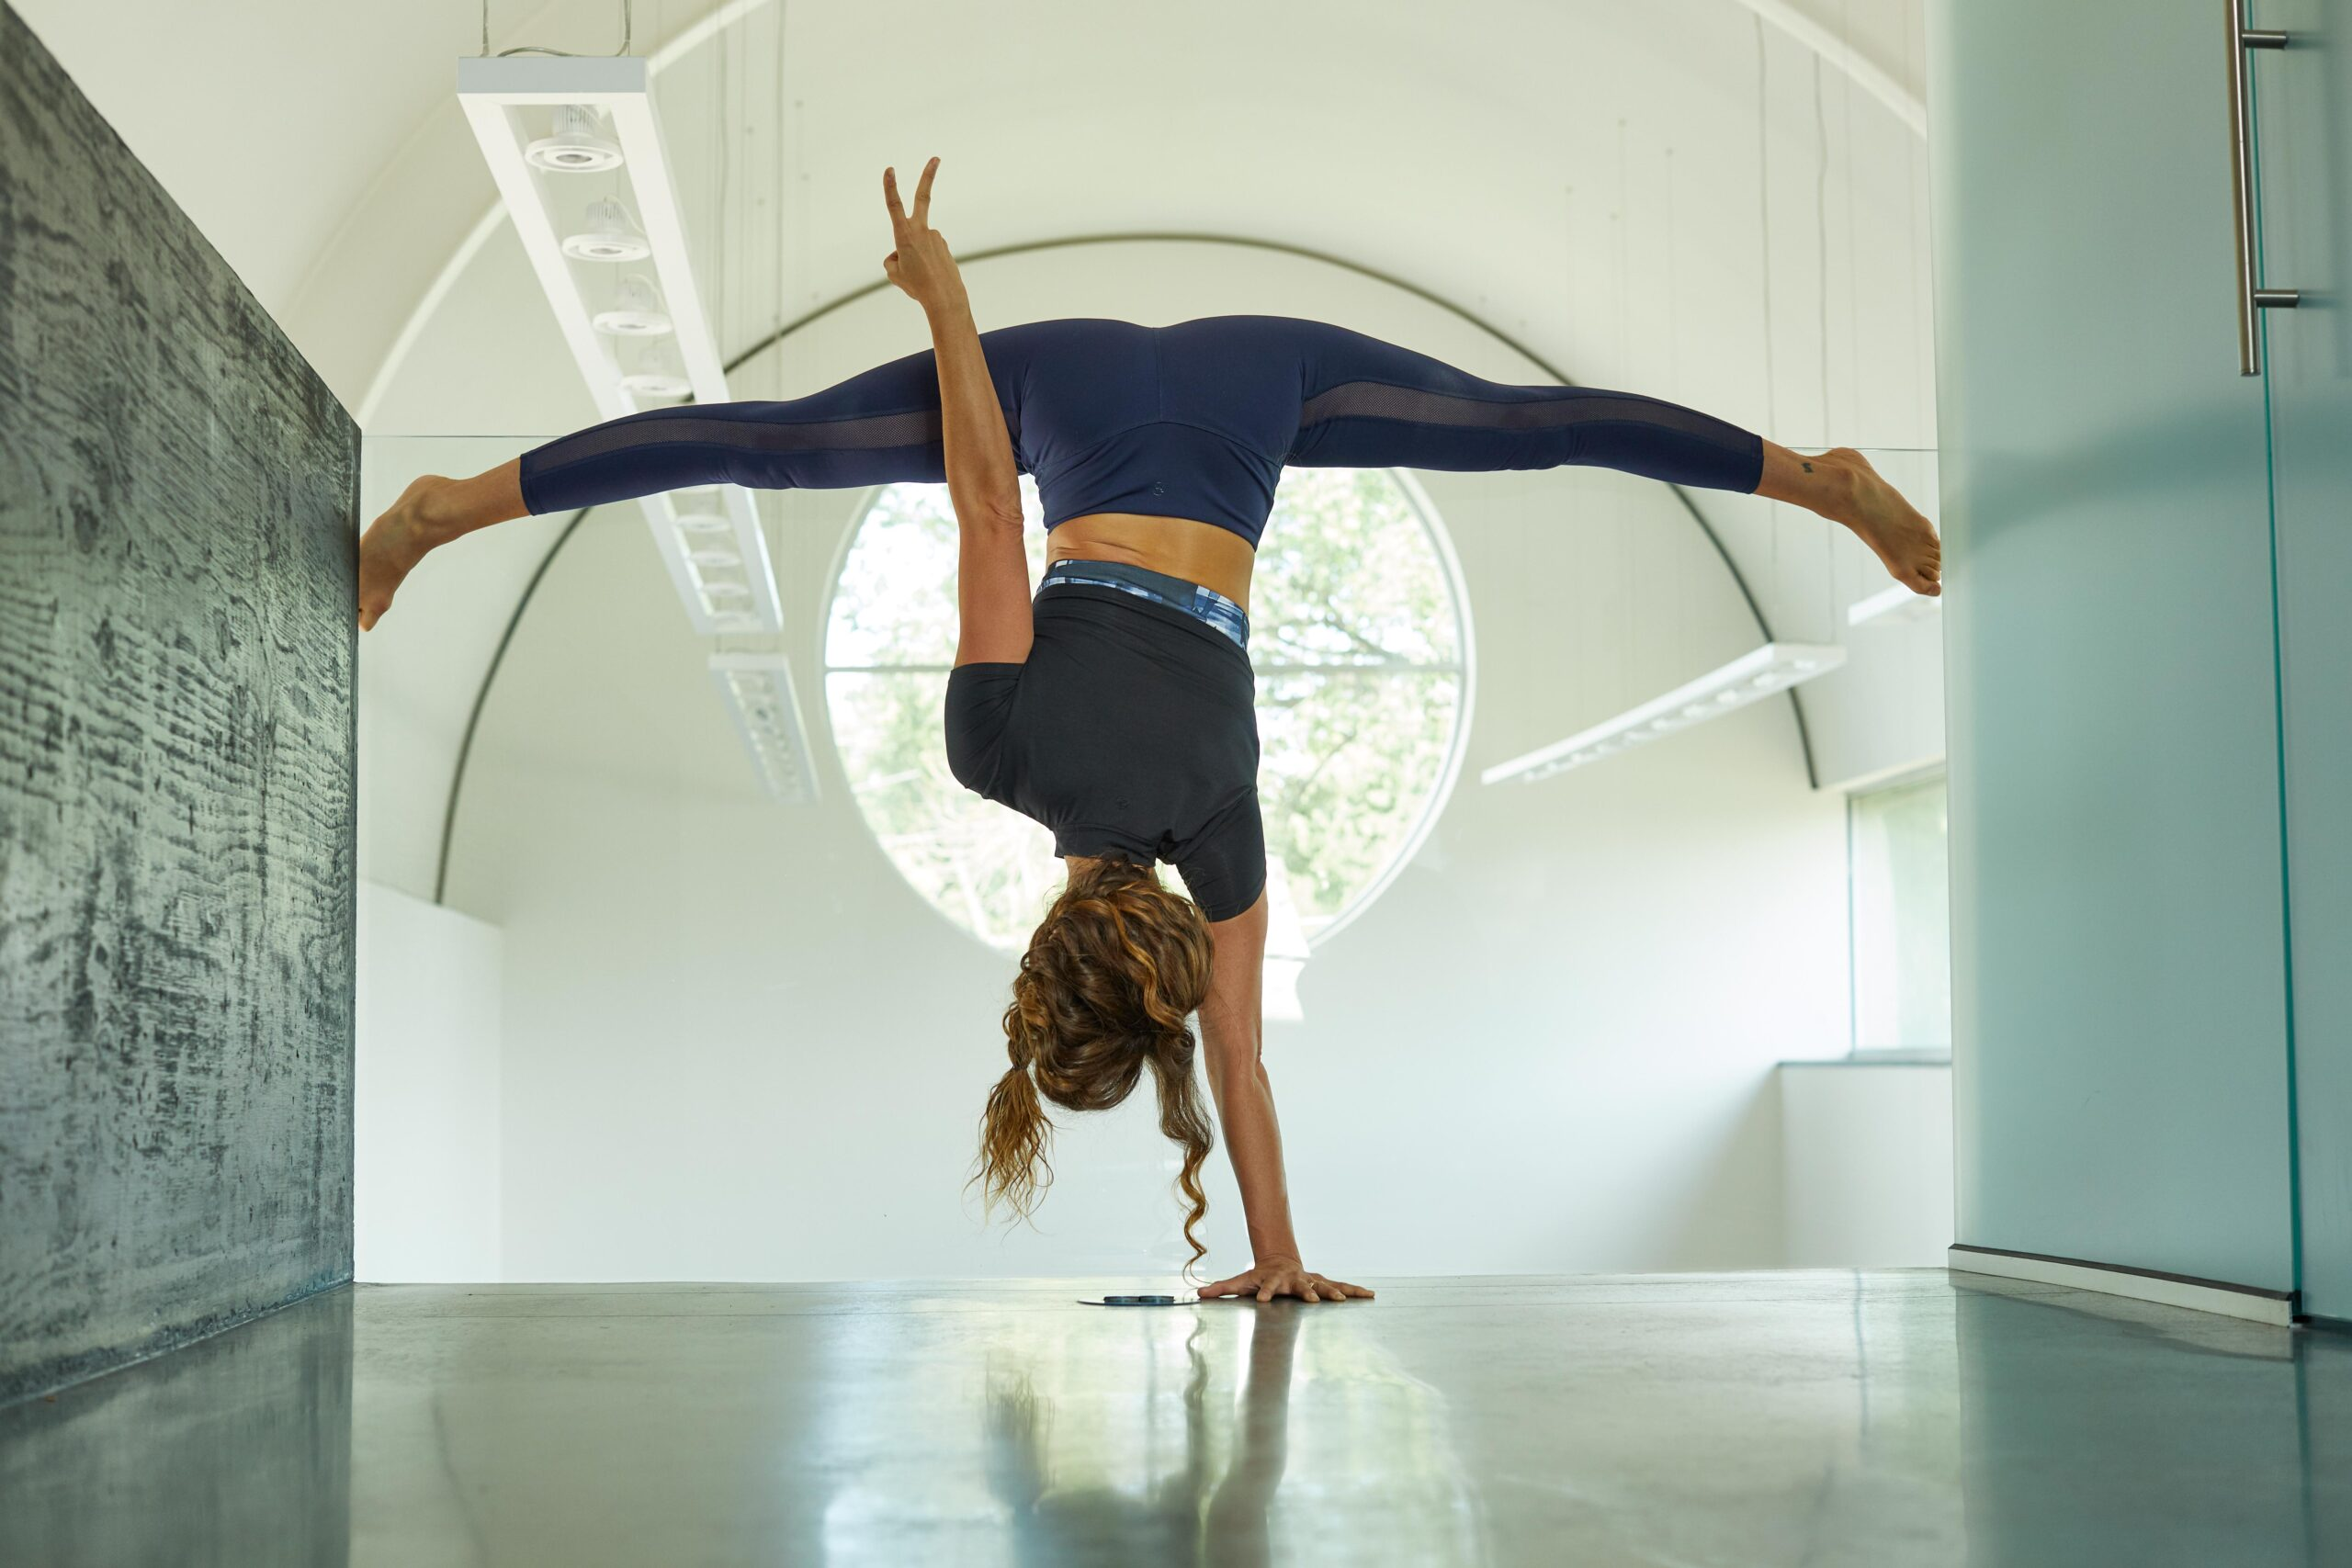 Jason Innes' photo of a model in a one-handed handstand with her legs split, while her other hand flashes a peace sign